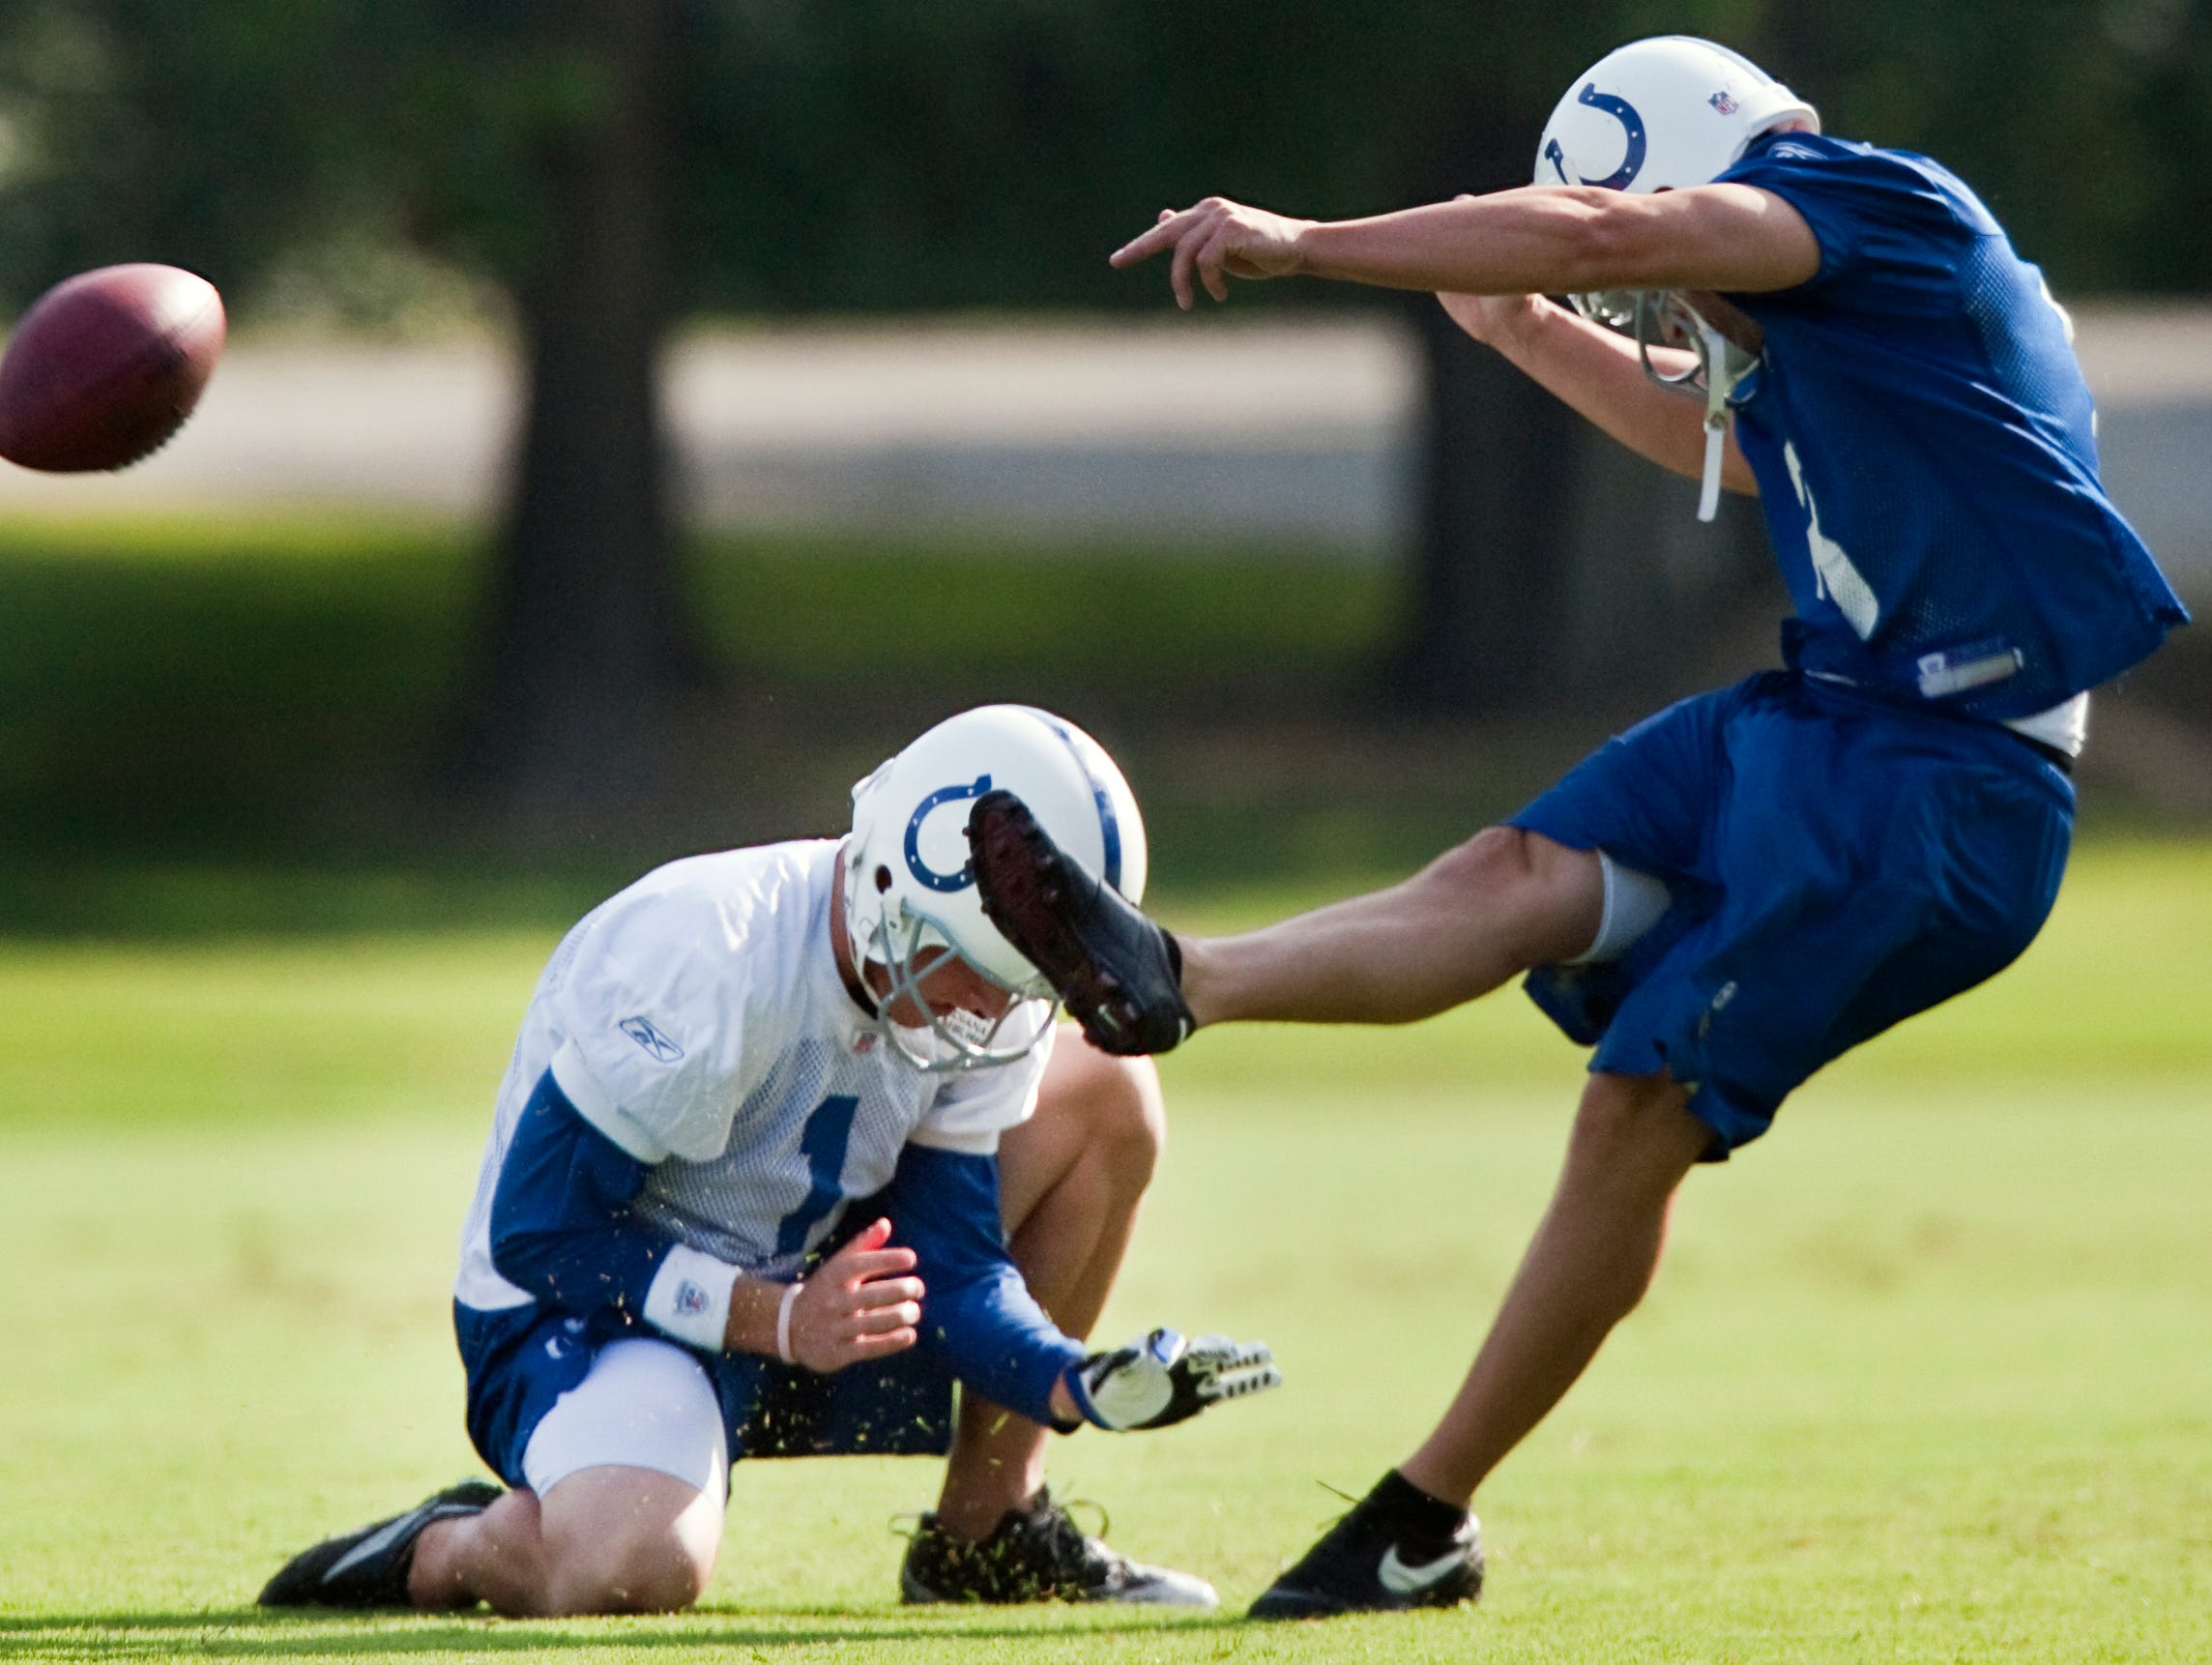 Indianapolis Colts rookie punter Pat McAfee (1), left, holds for a field goal attempt during practice for fellow rookie kicker Shane Andrus (8), right, during the team's first morning of practice during training camp at Rose-Hulman Institute of Technology, Terre Haute, Ind., Monday, August 3, 2009.